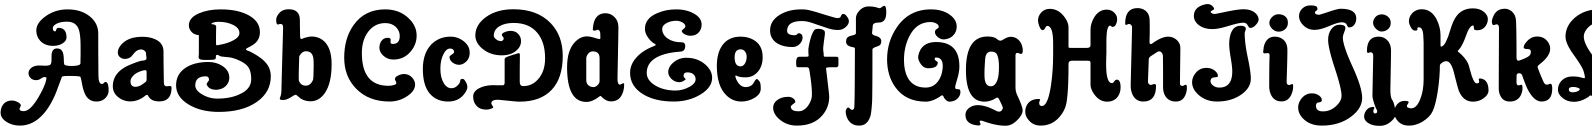 Cacao Fat Font